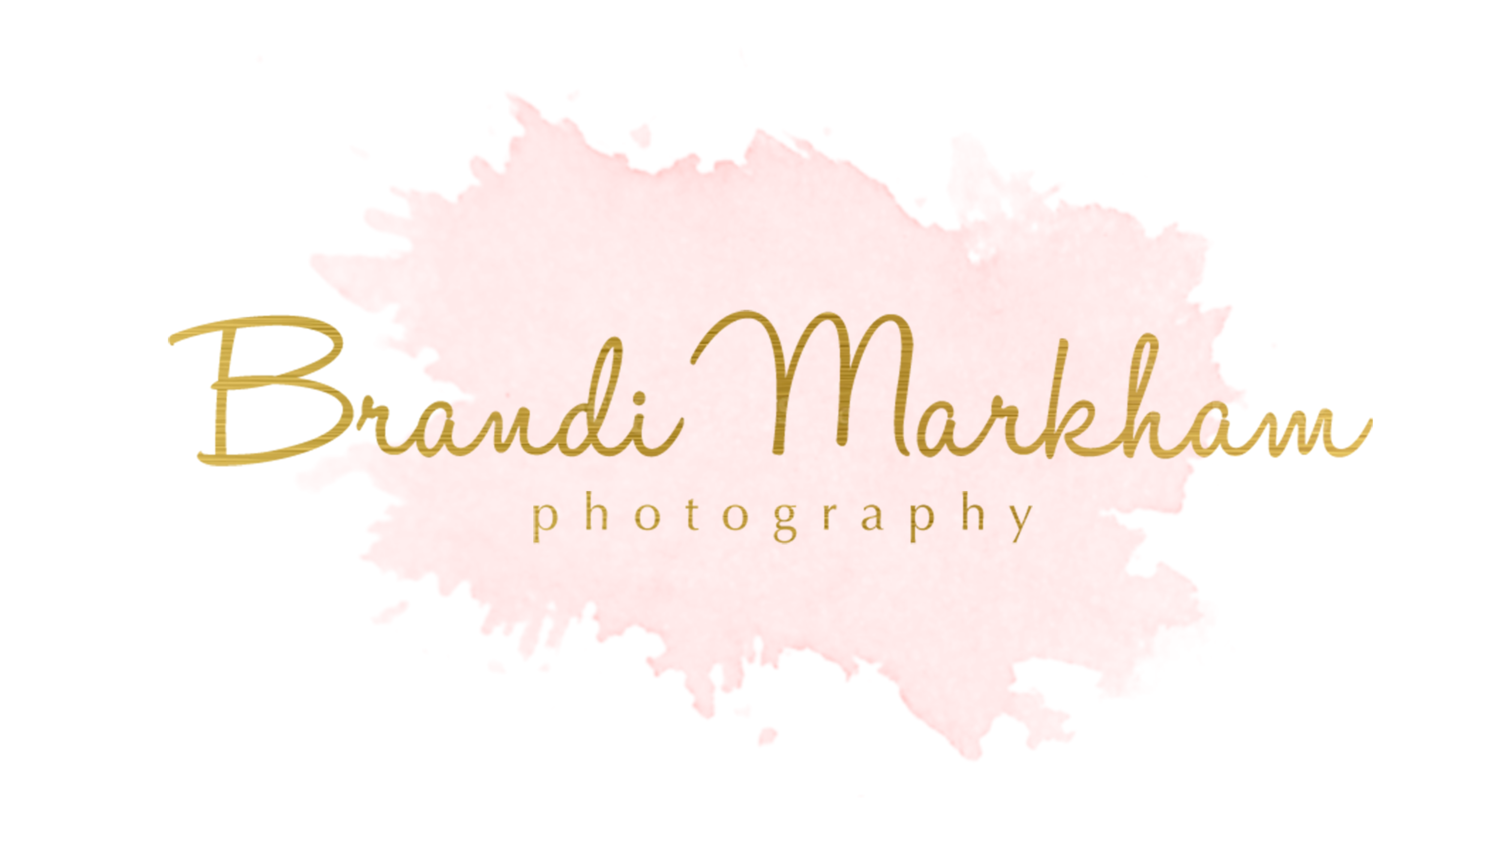 Brandi Markham Photography